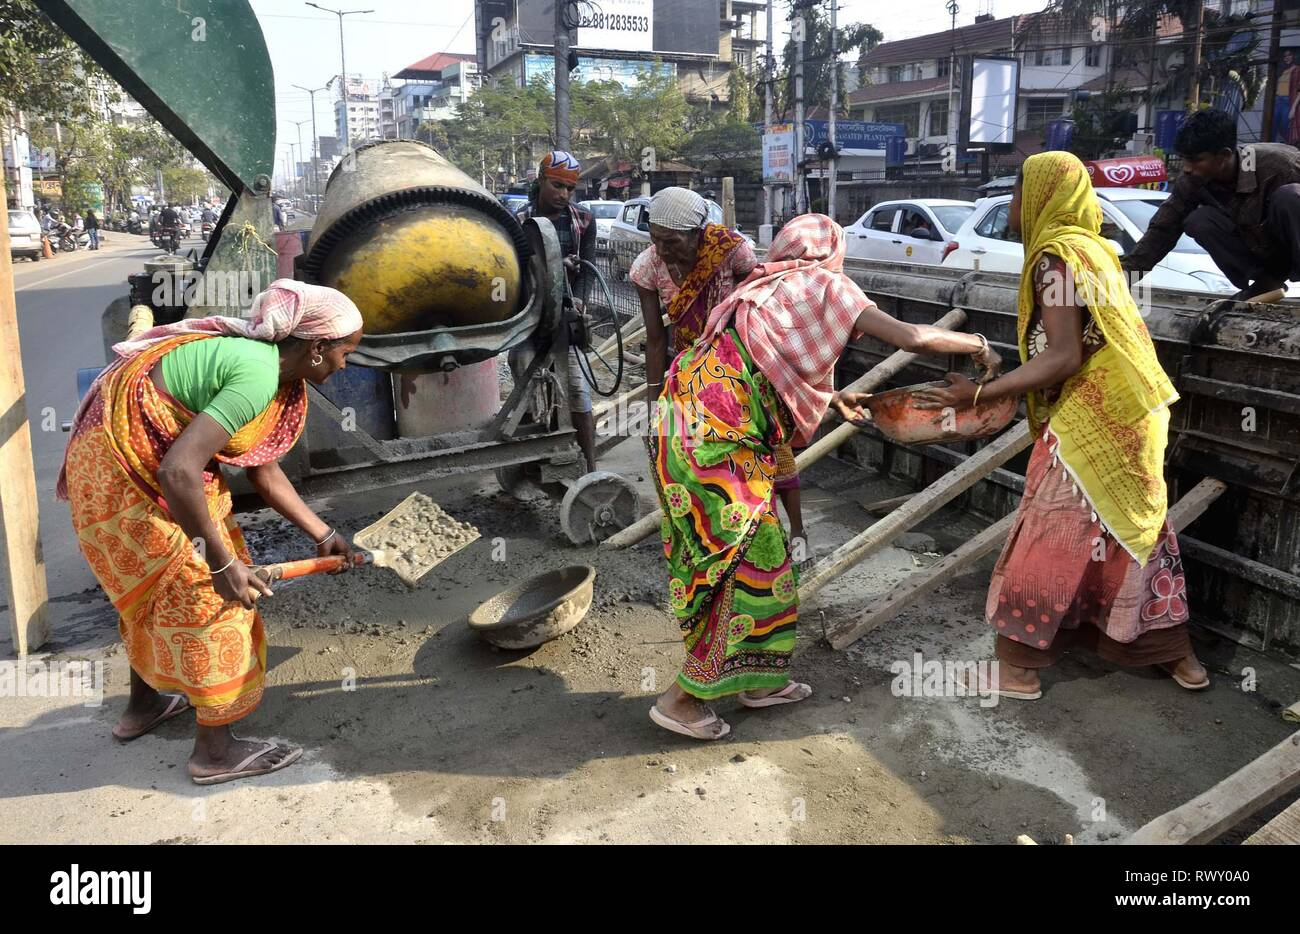 Guwahati, Assam, India. 07th Mar, 2019. Womens work at Road Construction in Guwahati on Thursday, March 07, 2019. Every year, March 8 is observed as International Women's Day to celebrate the social, economic, cultural and political achievements of women globally. Credit: Hafiz Ahmed/Alamy Live News - Stock Image